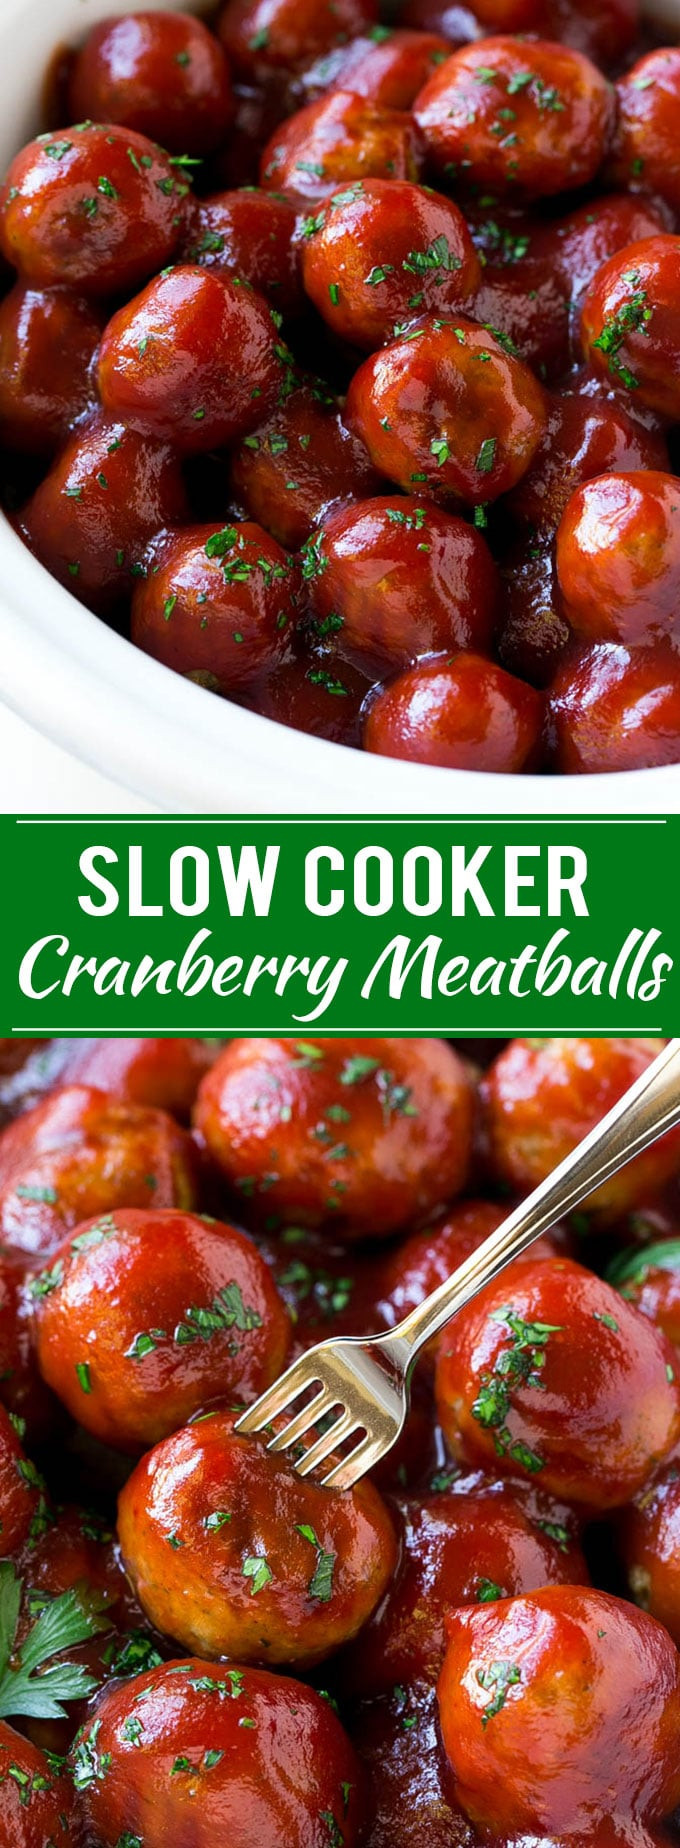 14 Easy Slow Cooker Appetizers  Cranberry Meatballs Slow Cooker Dinner at the Zoo